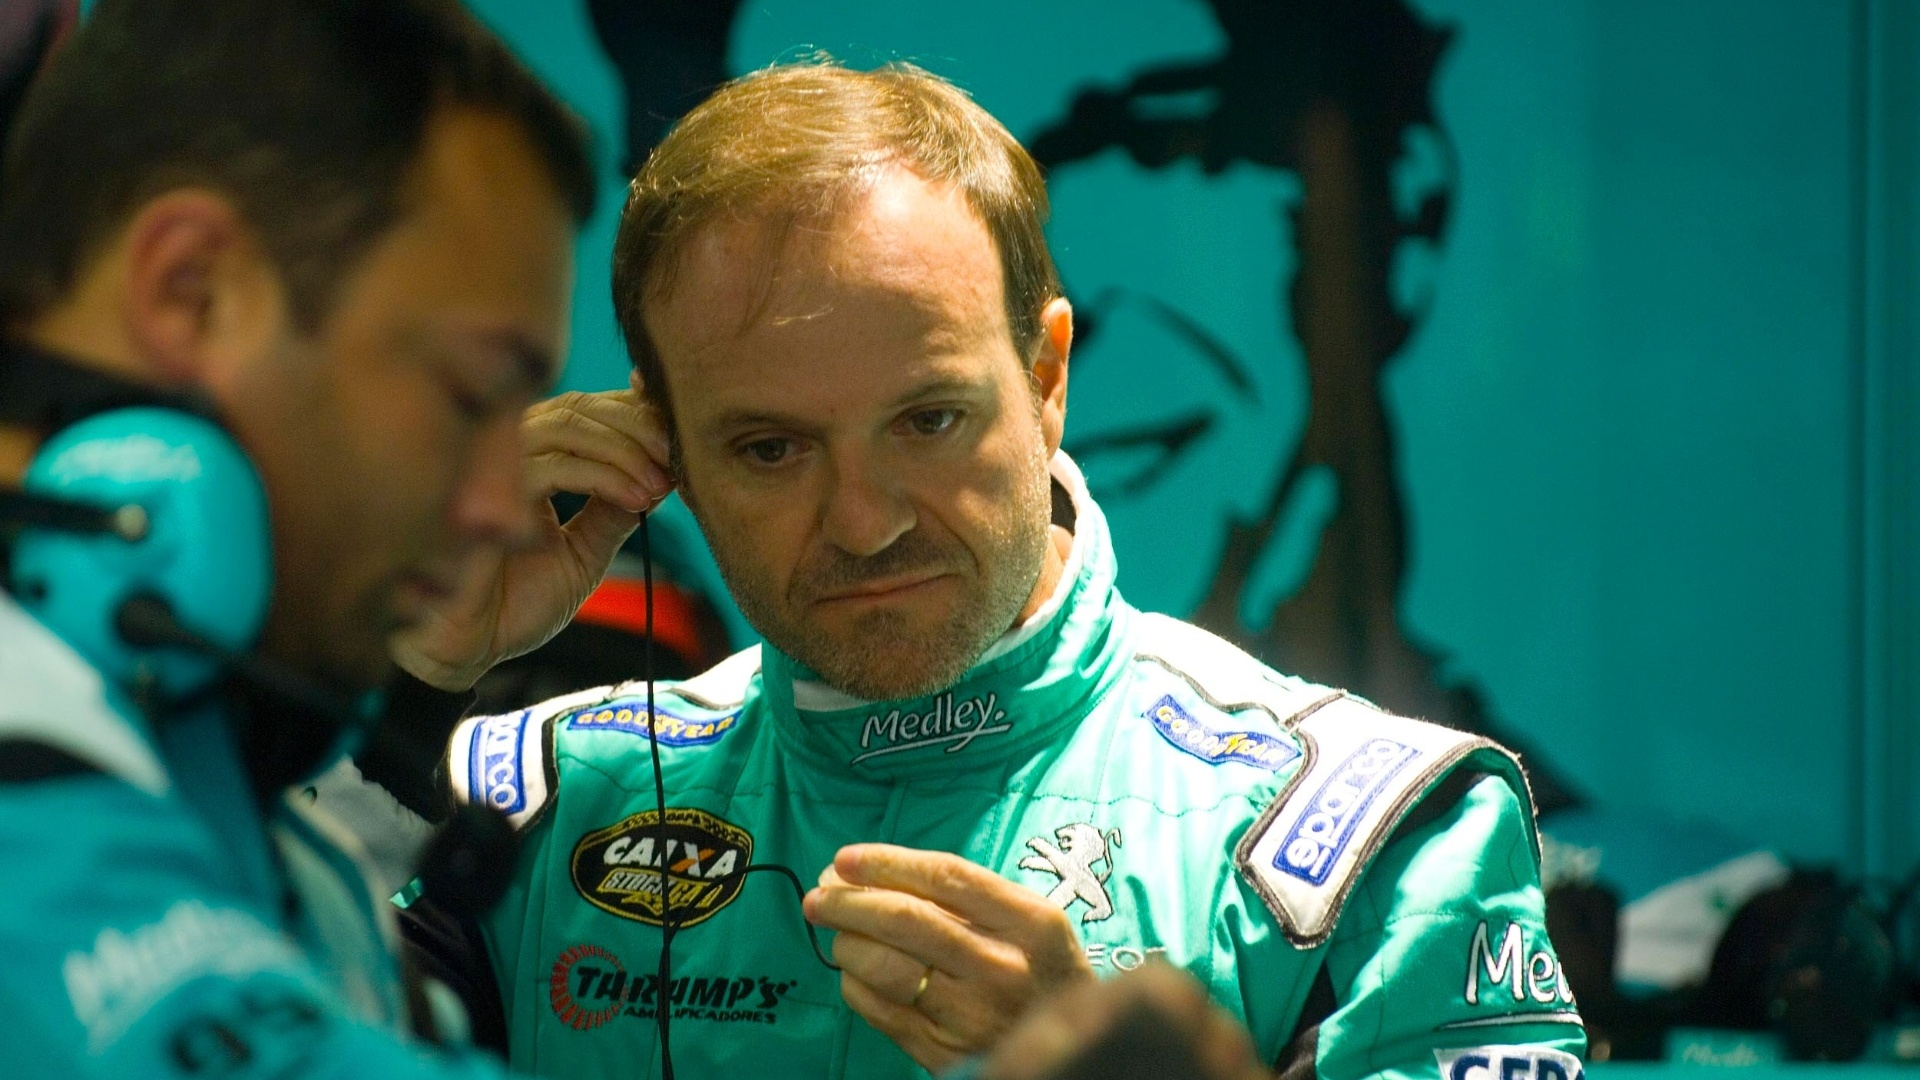 Rubens Barrichello  visto nos boxes da equipe Medley/Fulltime aps ficar em 22 lugar na etapa de Curitiba da Stock